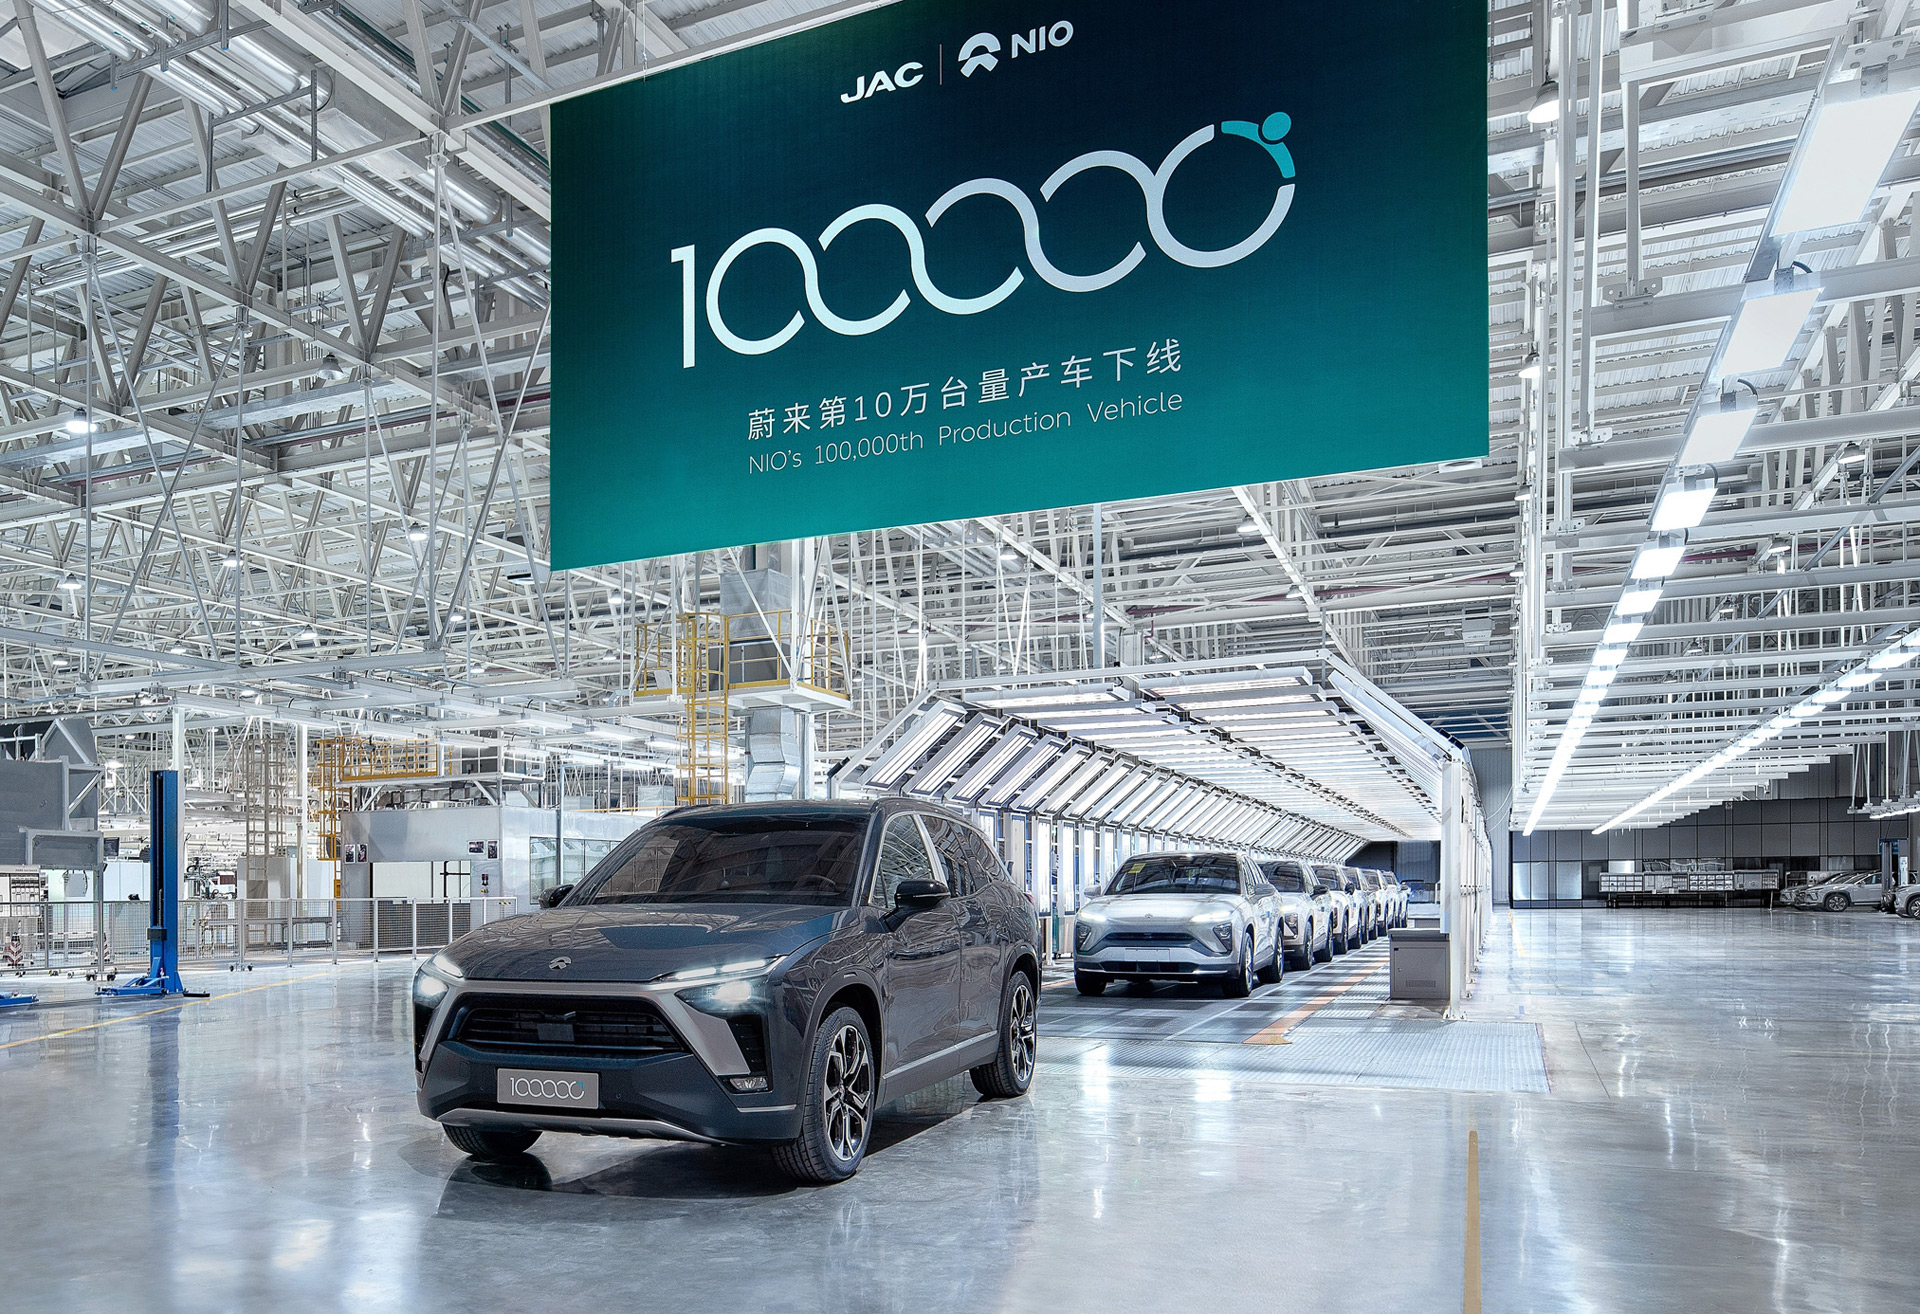 nio-celebrates-production-of-100000th-vehicle_100787987_h